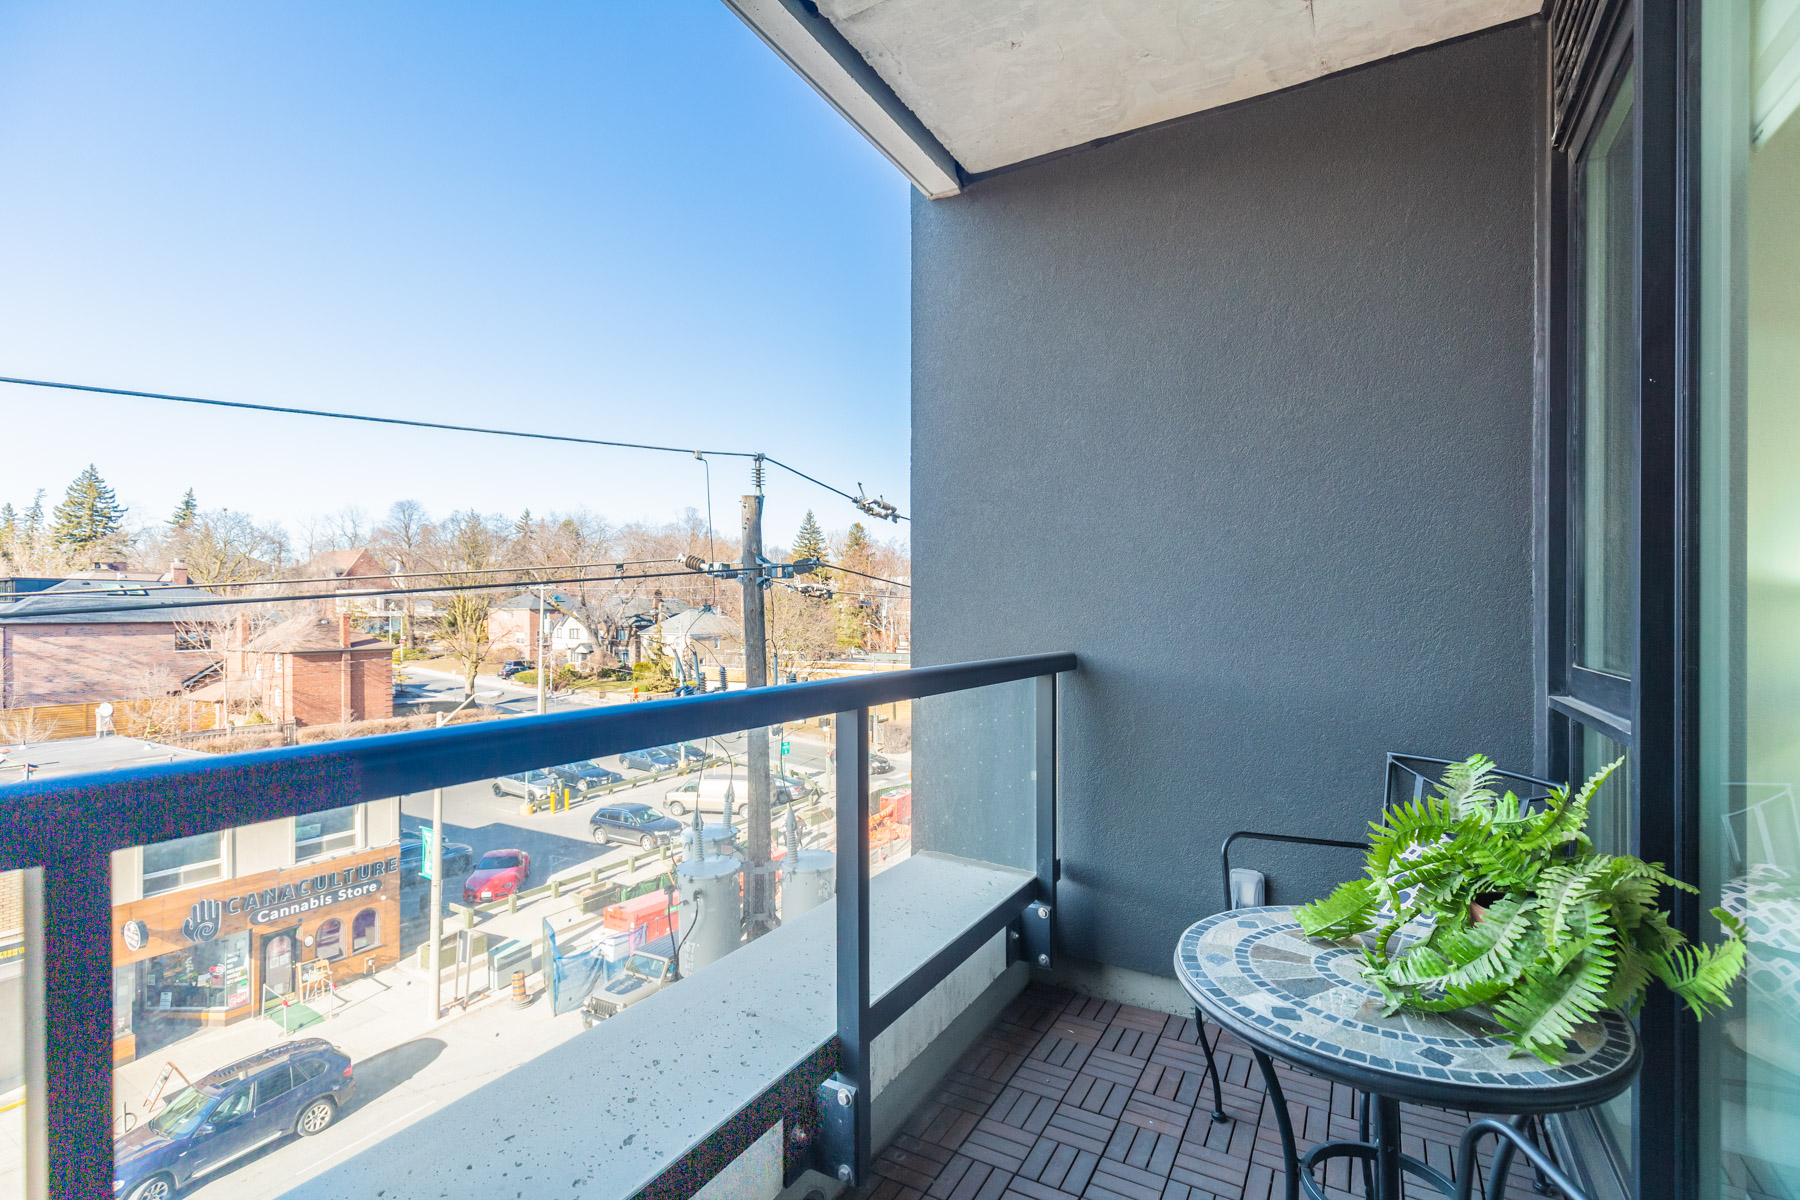 170 Chiltern Hill Rd Unit 410 balcony with parquet floors and glass panels.